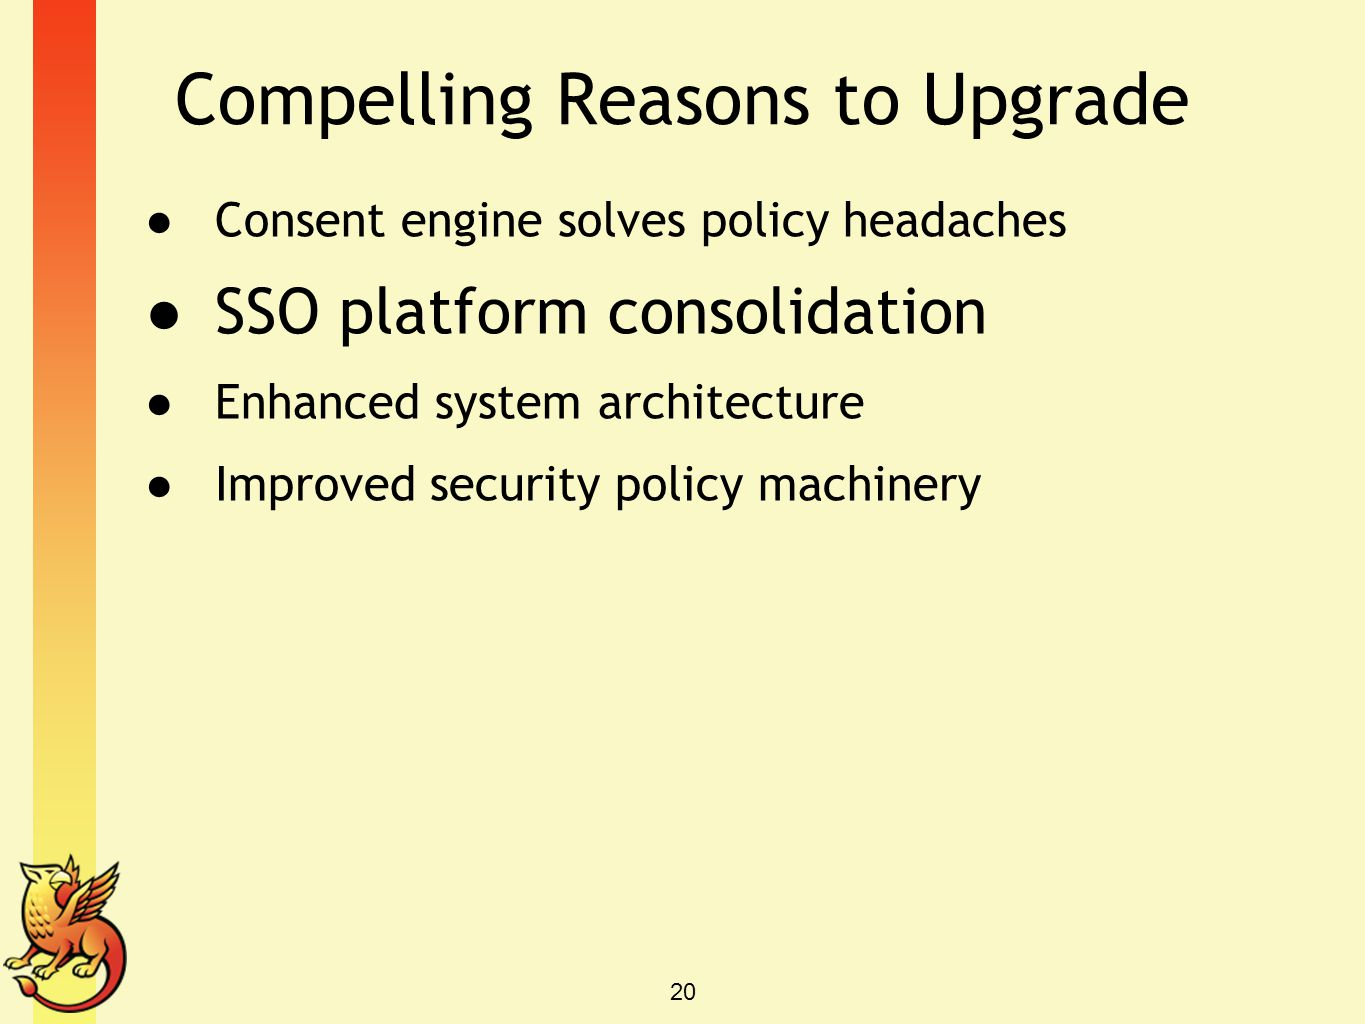 Compelling Reasons to Upgrade